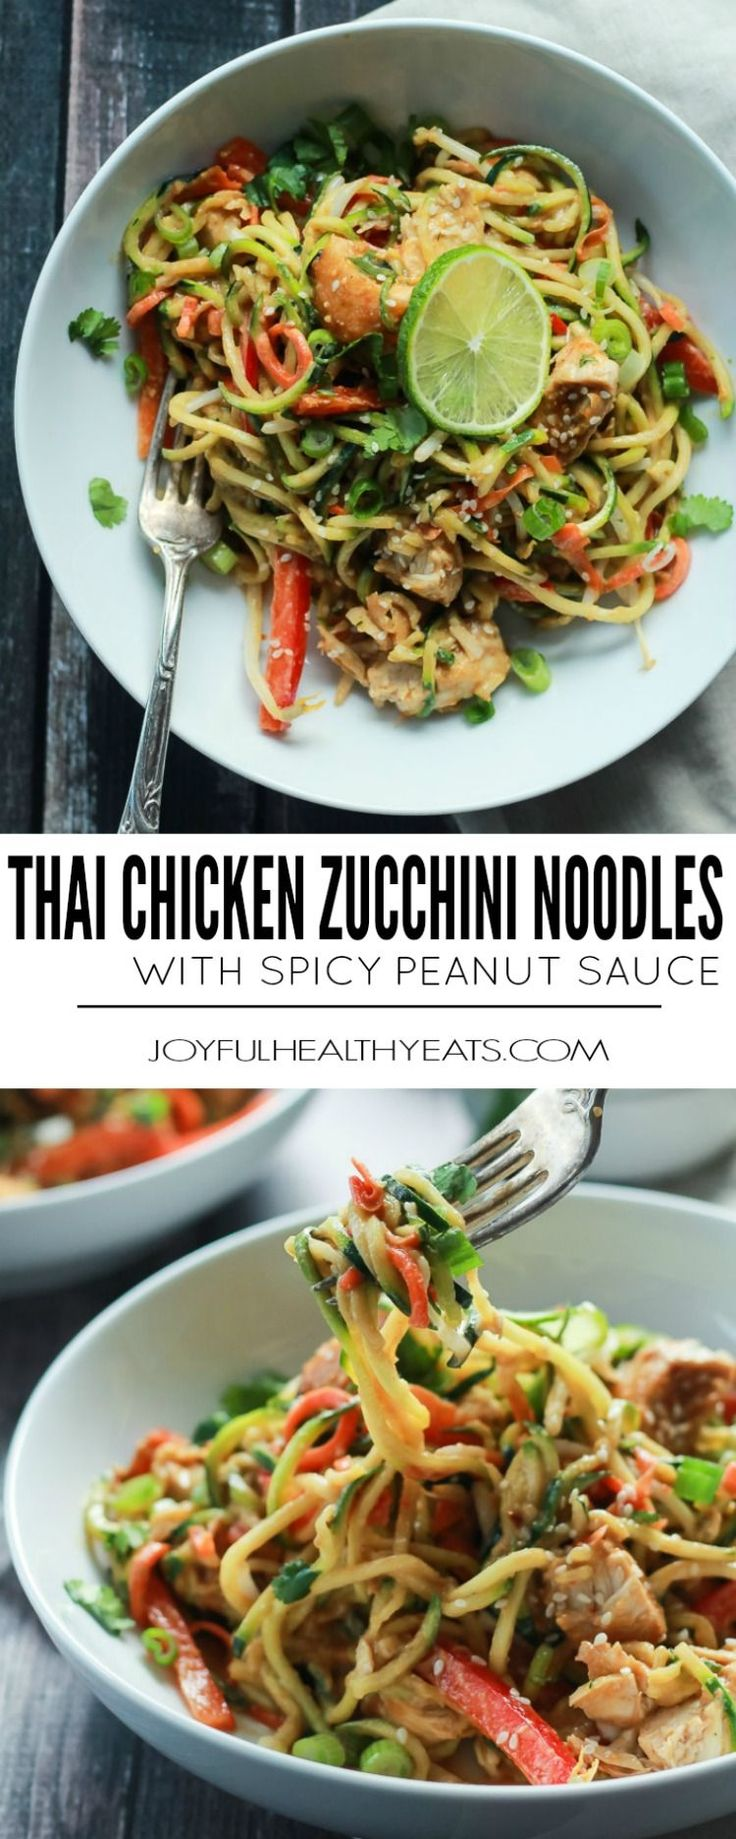 手机壳定制high top white s for women Zoodles are the star in this easy  minute Thai Chicken Zucchini Noodles recipe with Spicy Peanut Sauce only   calories and packed with a punch of flavor  joyfulhealthyeats com paleo glutenfree